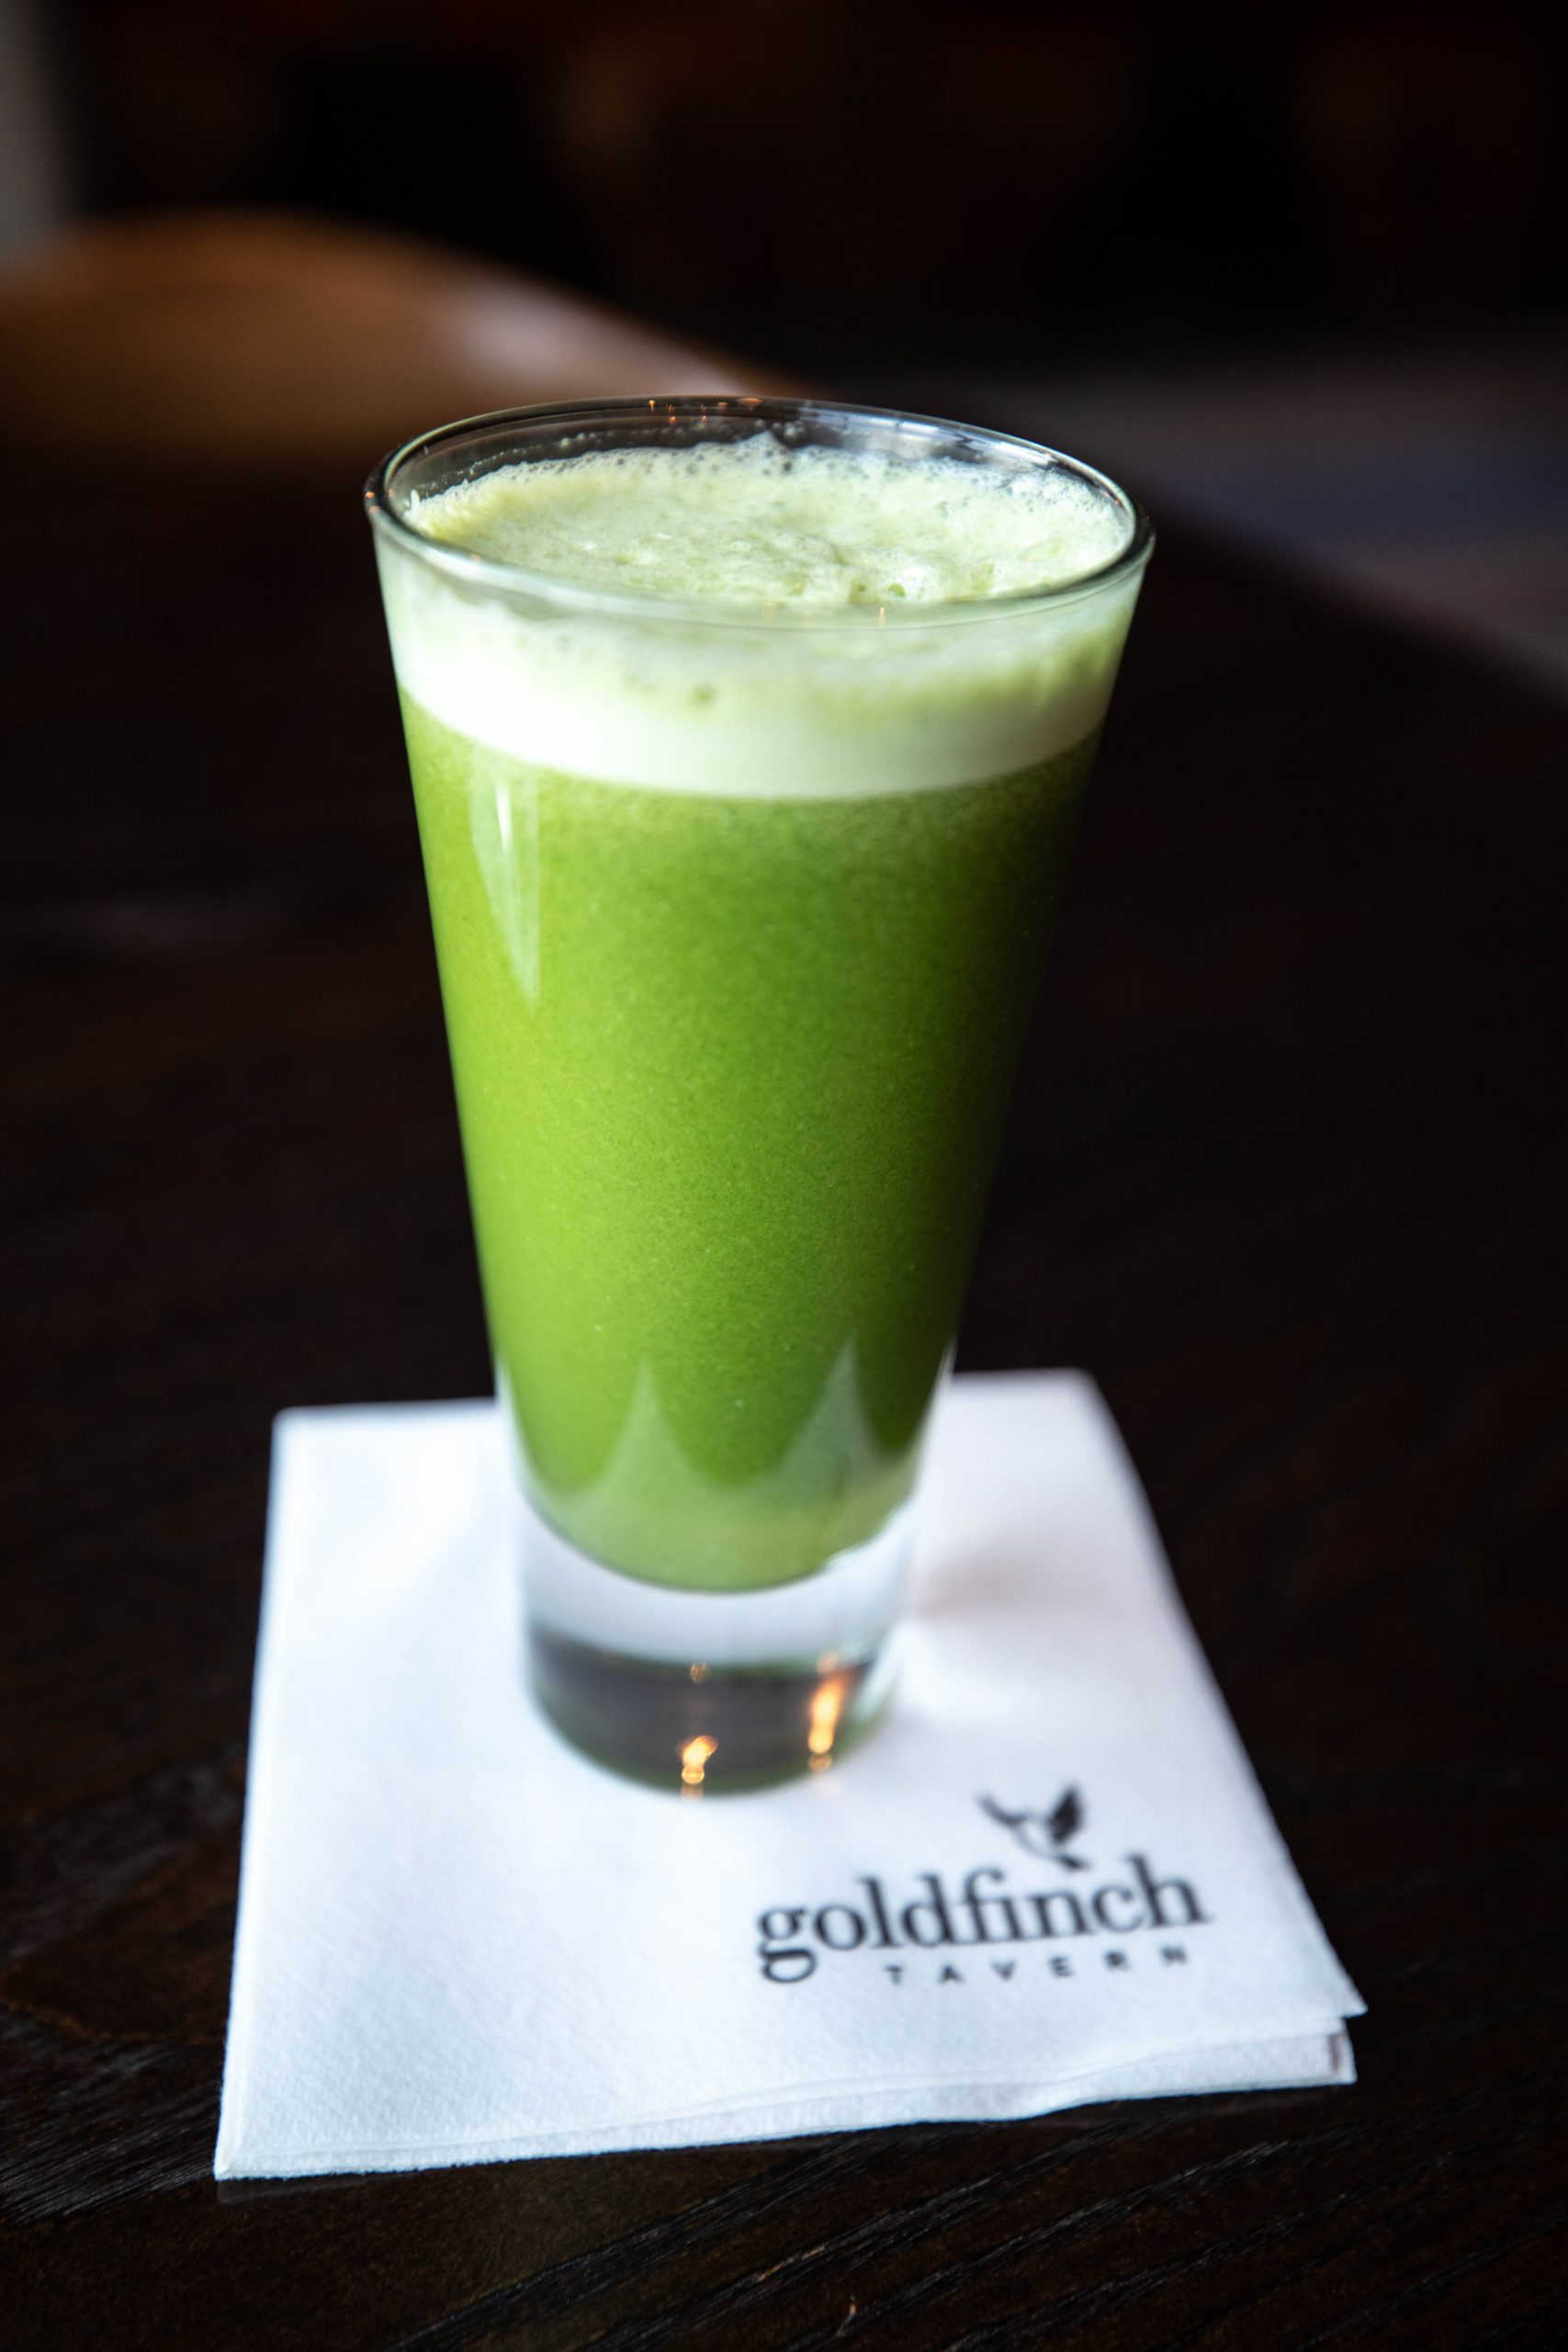 Goldfinch Tavern Freshly Squeezed Green Juice Four Seasons Hotel Seattle Washington by Annie Fairfax